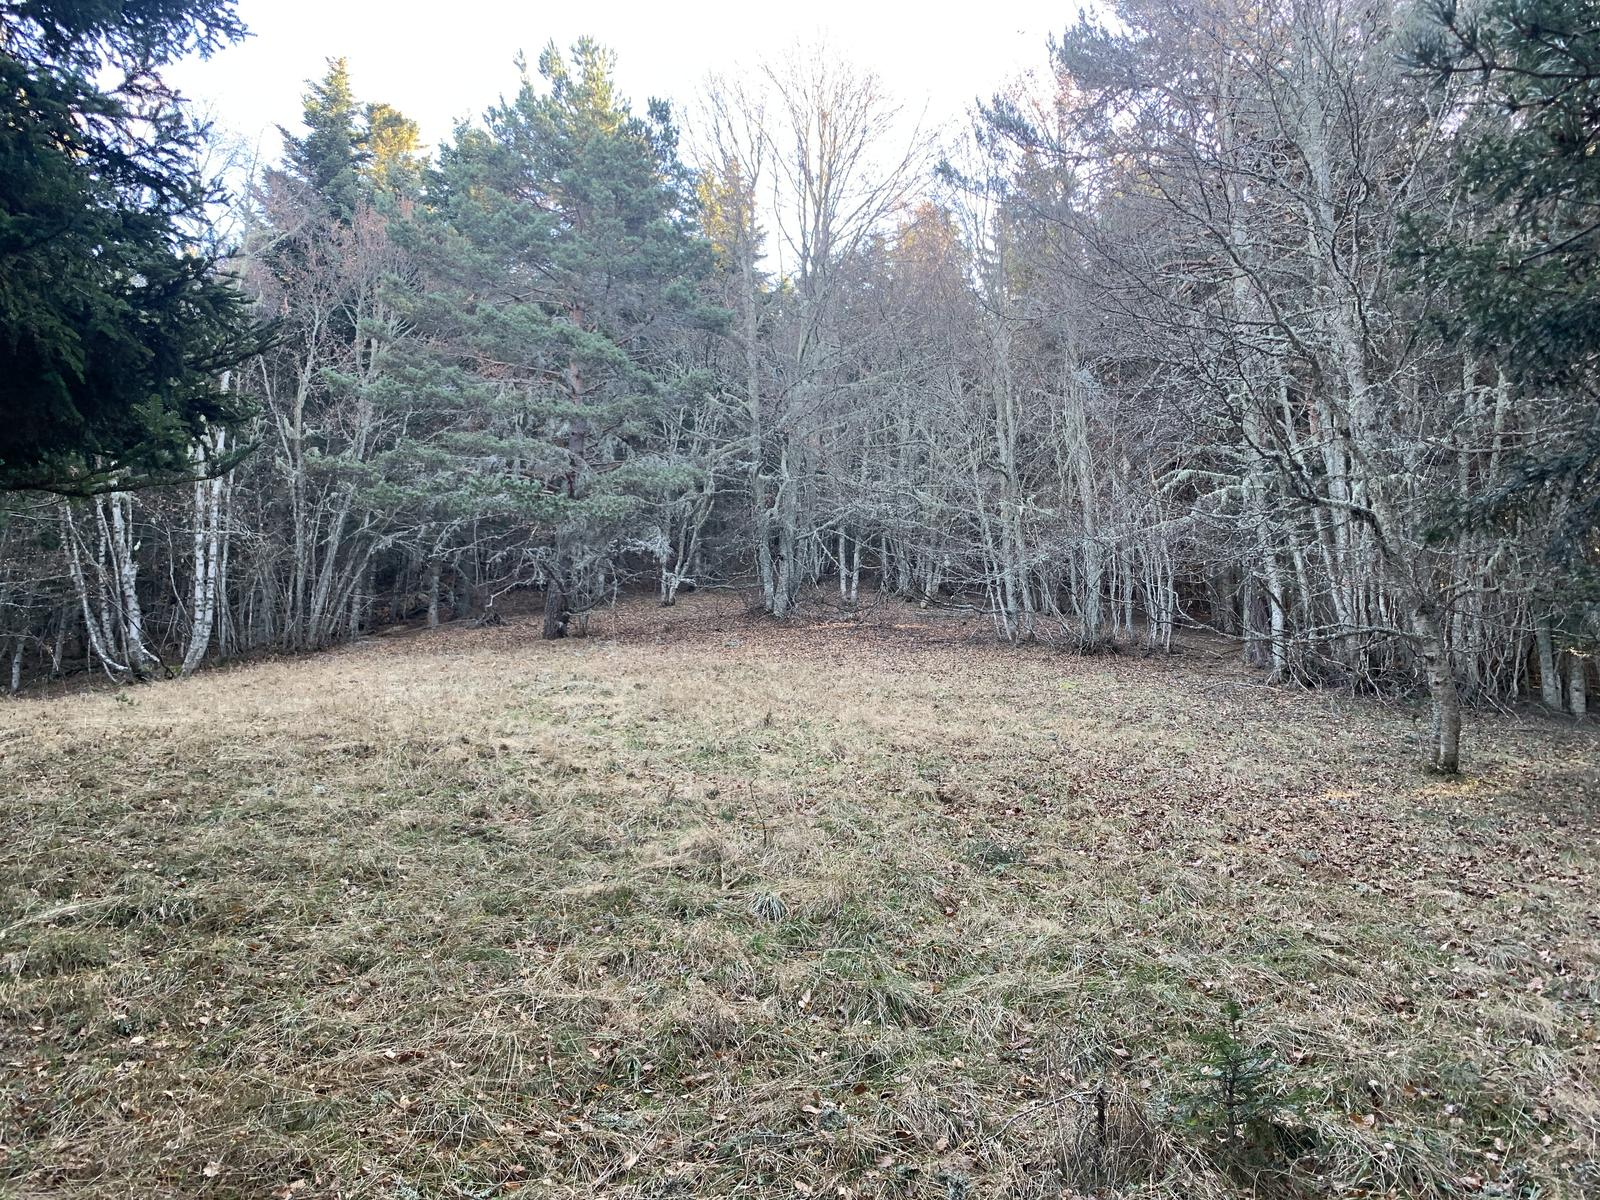 Photo of Lower meadow